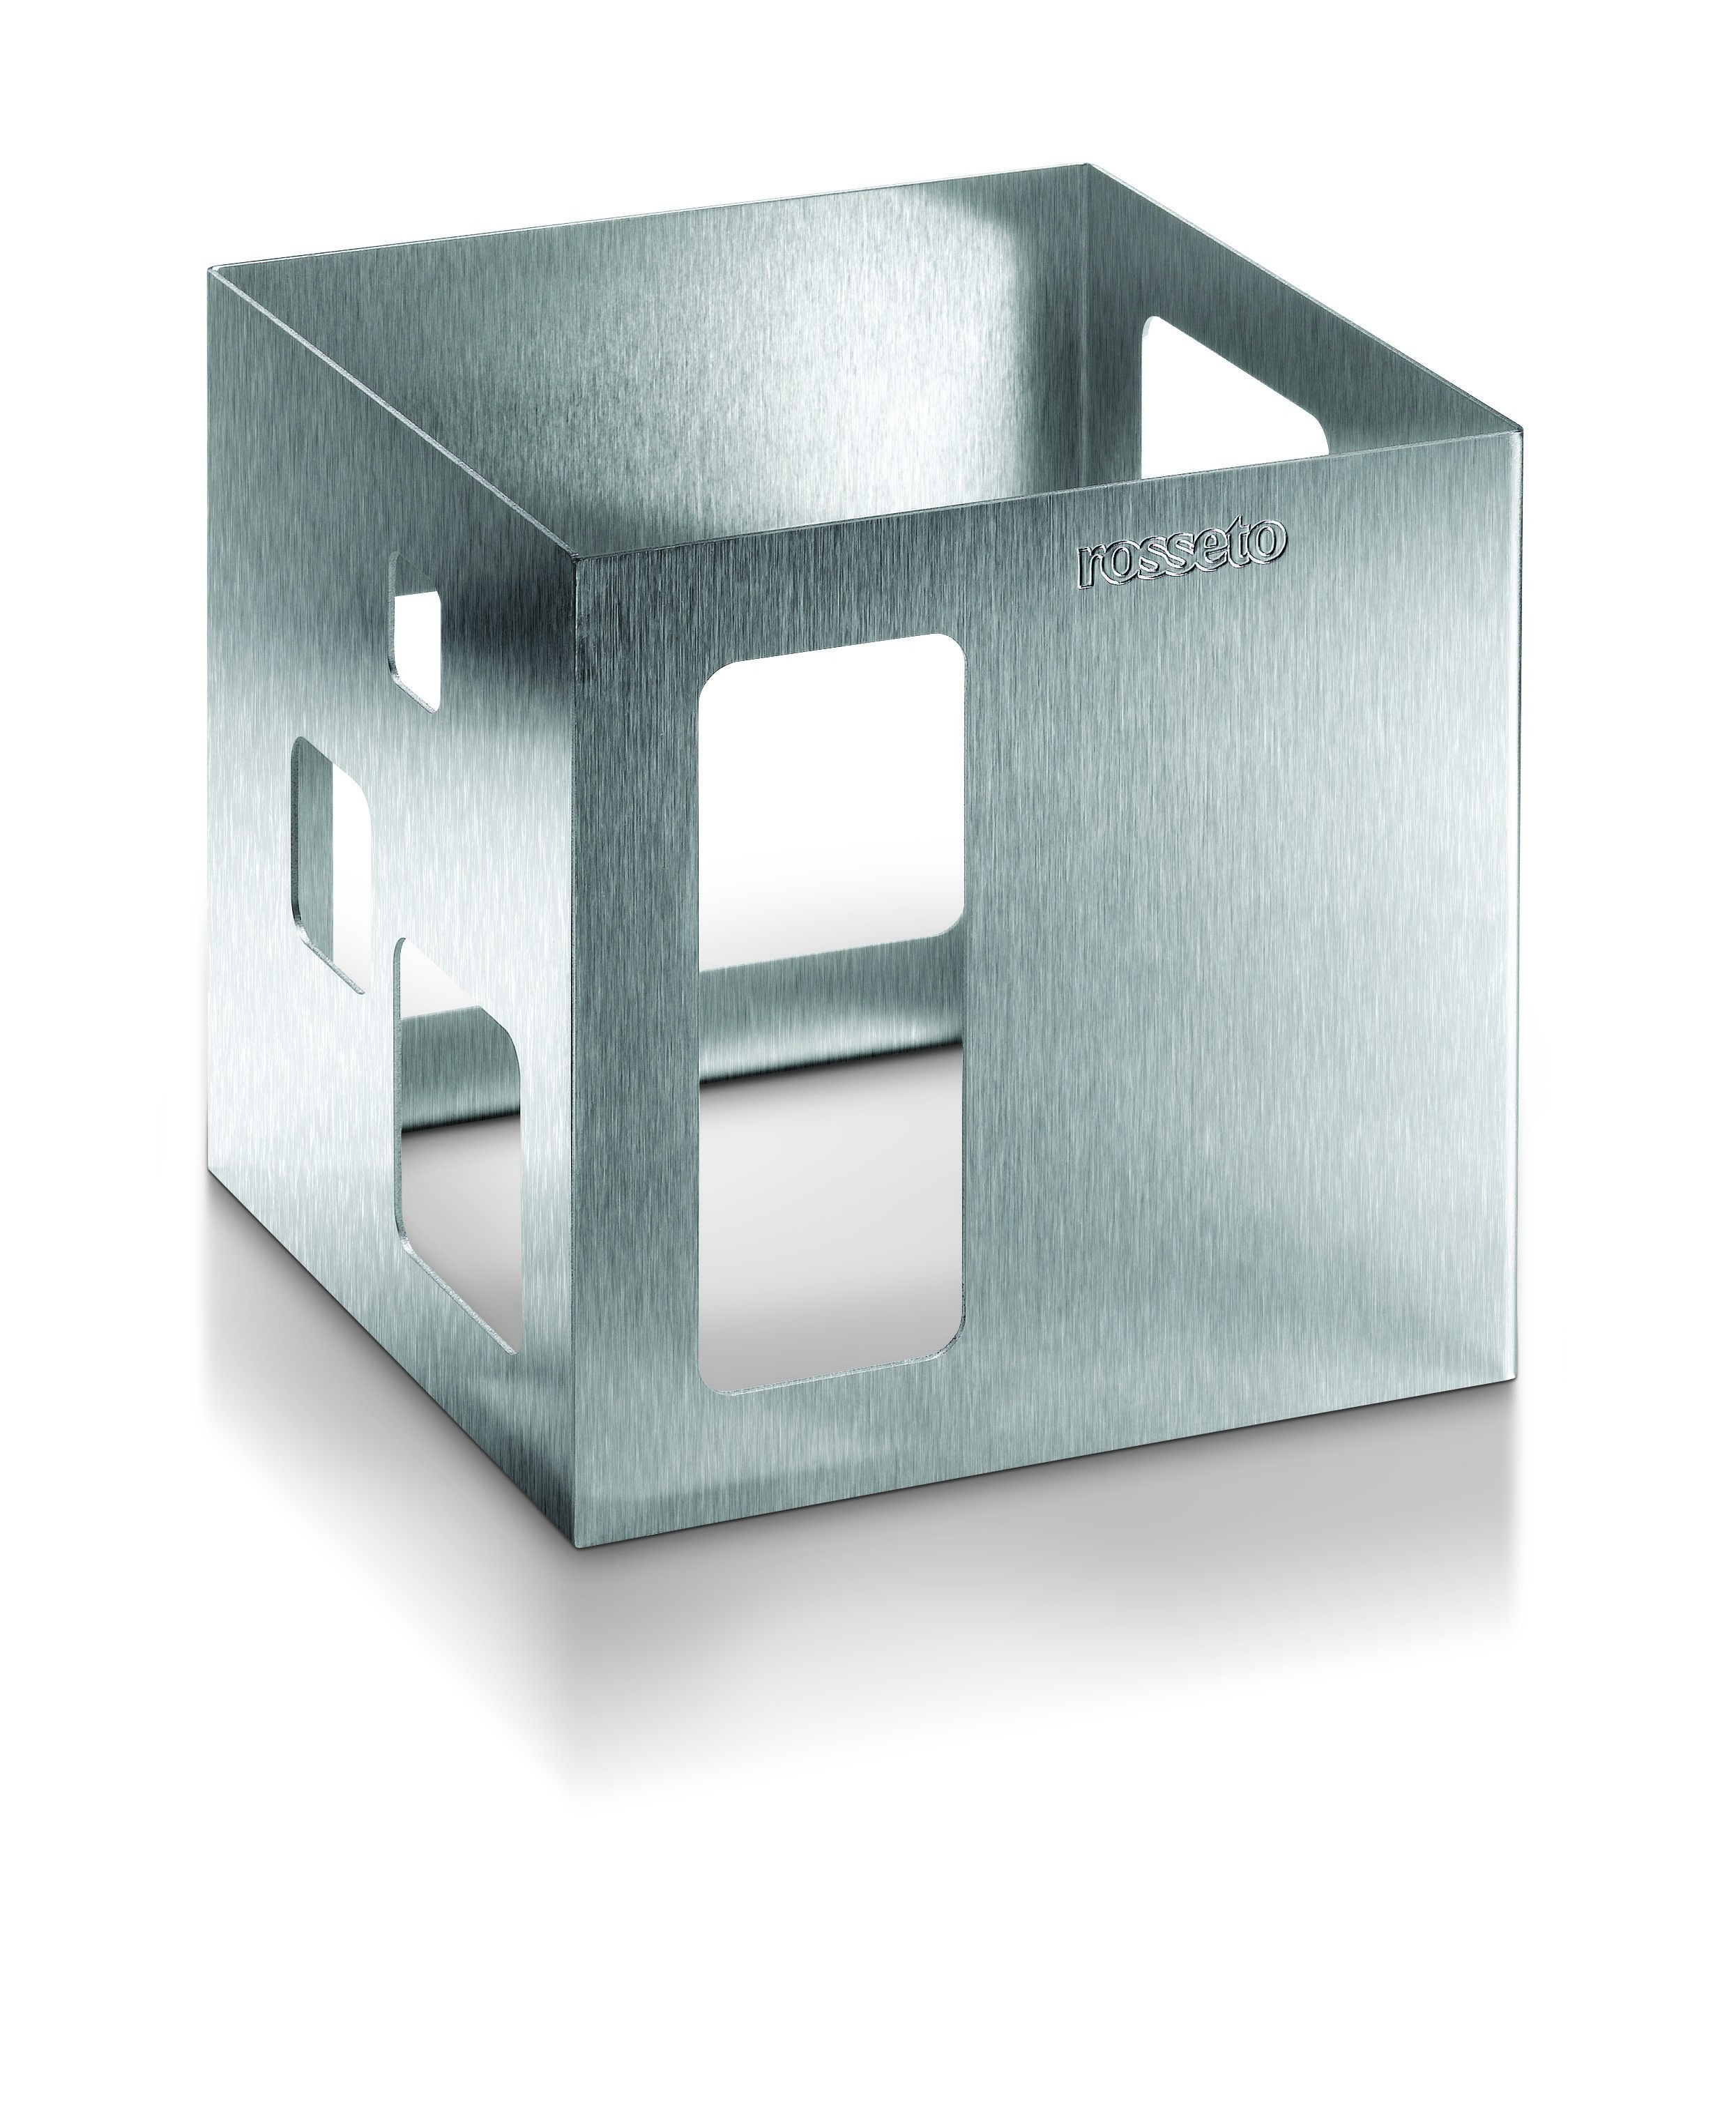 """Rosseto D63177 Square Stainless Steel Brushed Finish Square Riser 7"""" x 7"""" x 7""""H"""